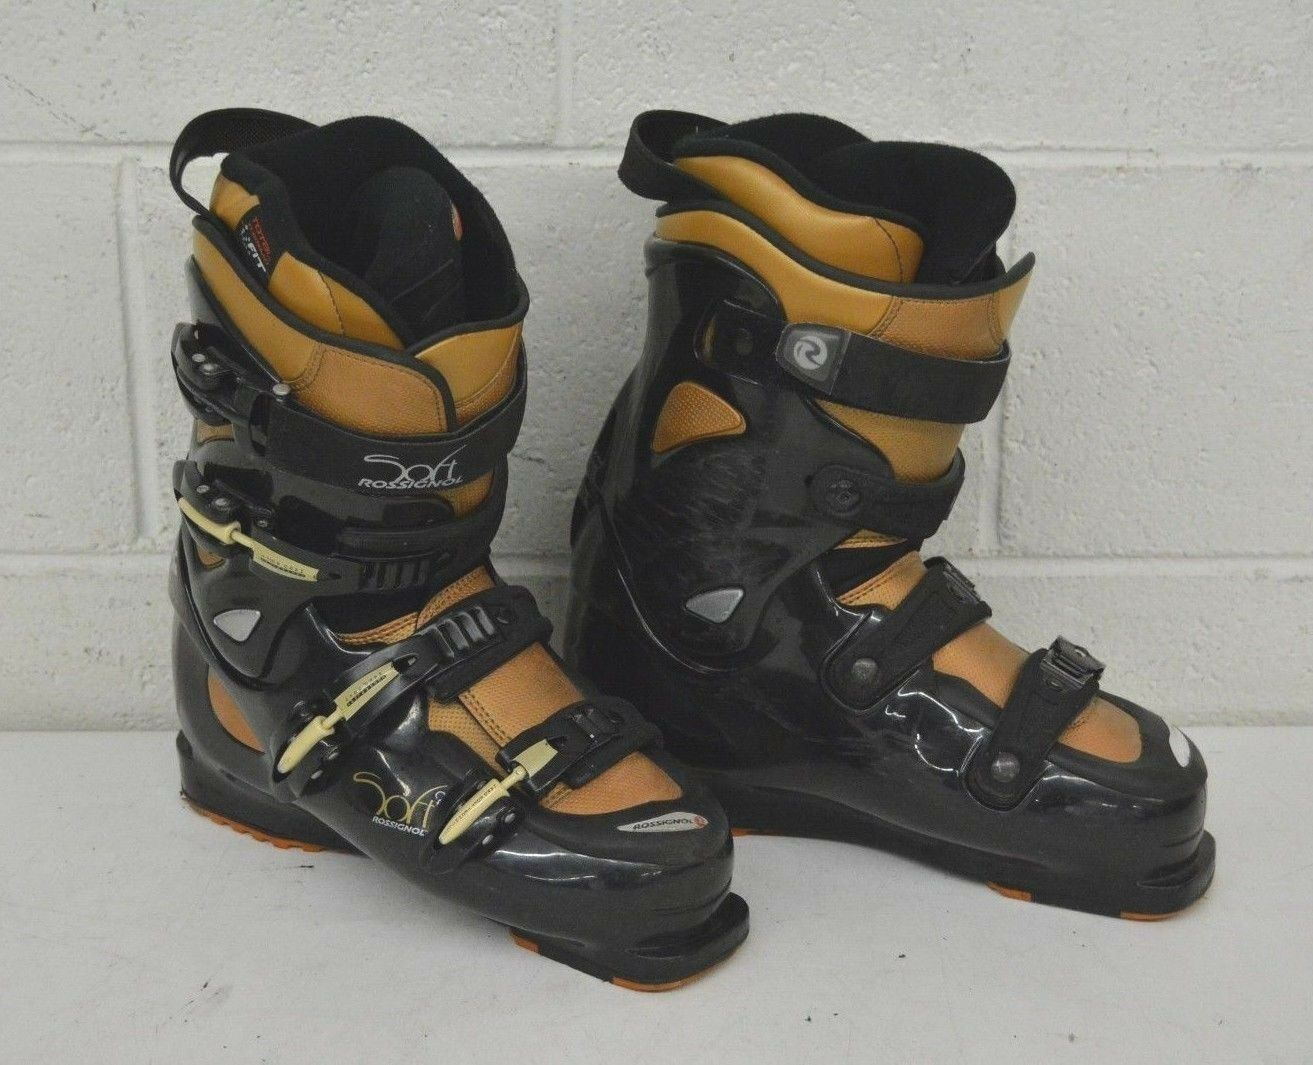 Rossignol Soft Hybrid Downhill Ski Boots US Women's 9.5 MDP 26.5 Fast Shipping